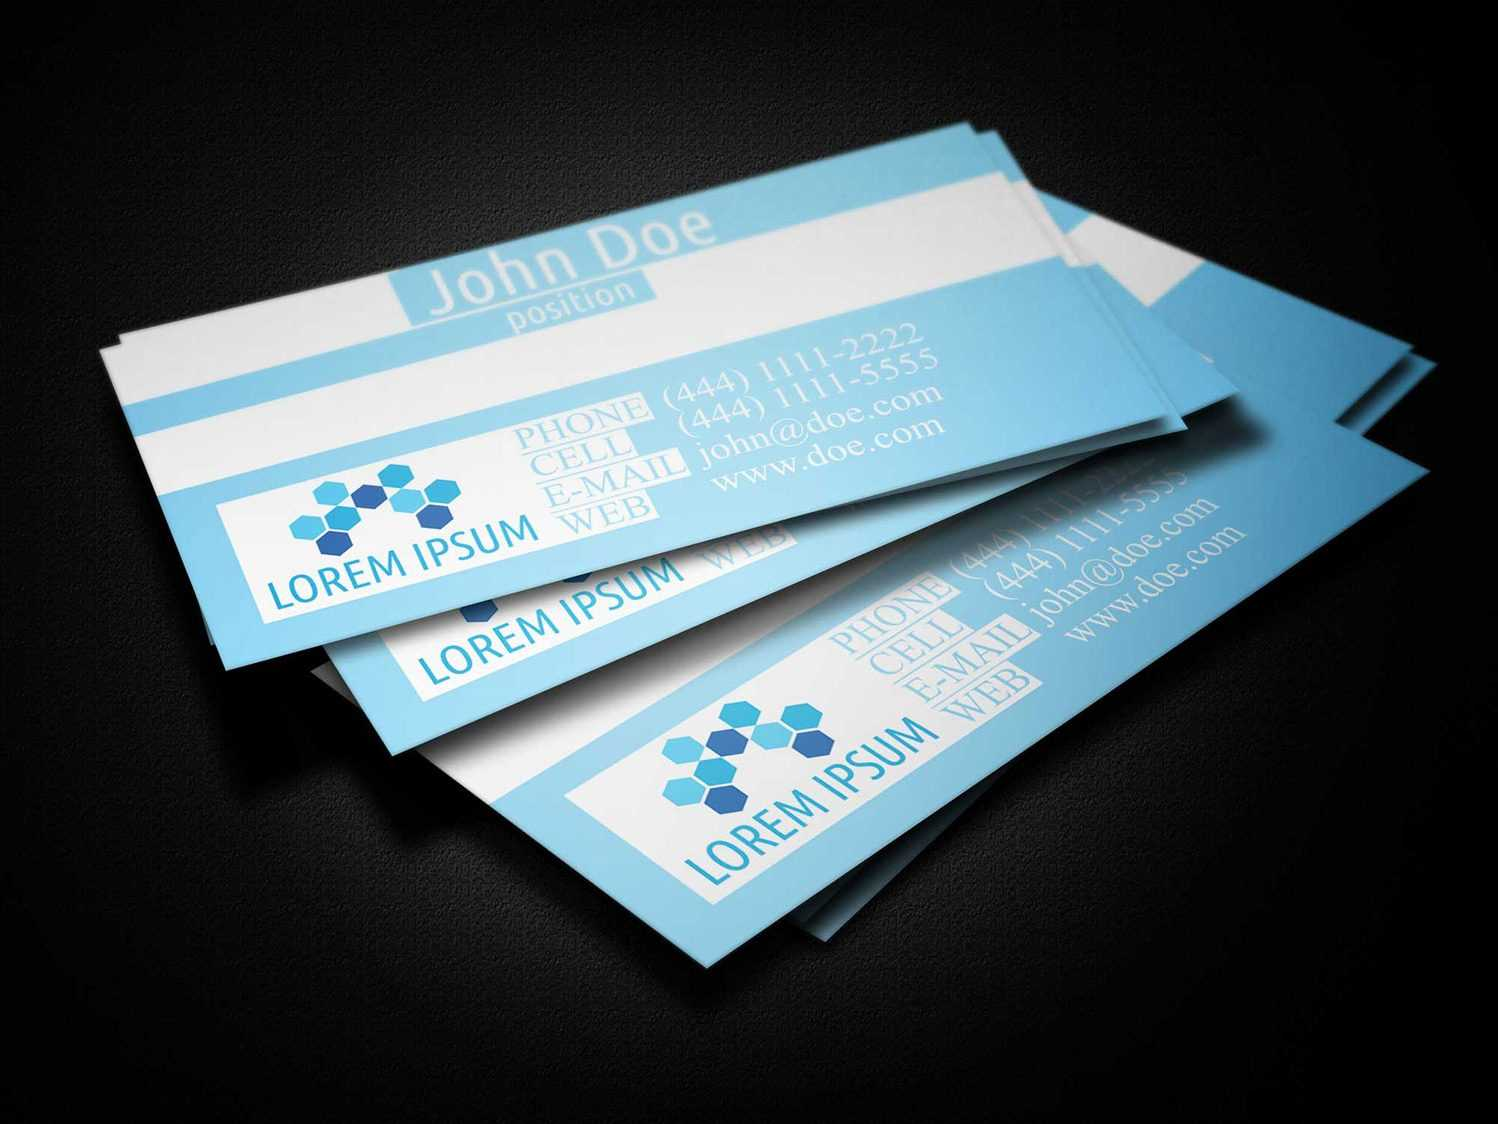 Blue Medical Business Card Template - Business Cards Lab With Regard To Medical Business Cards Templates Free